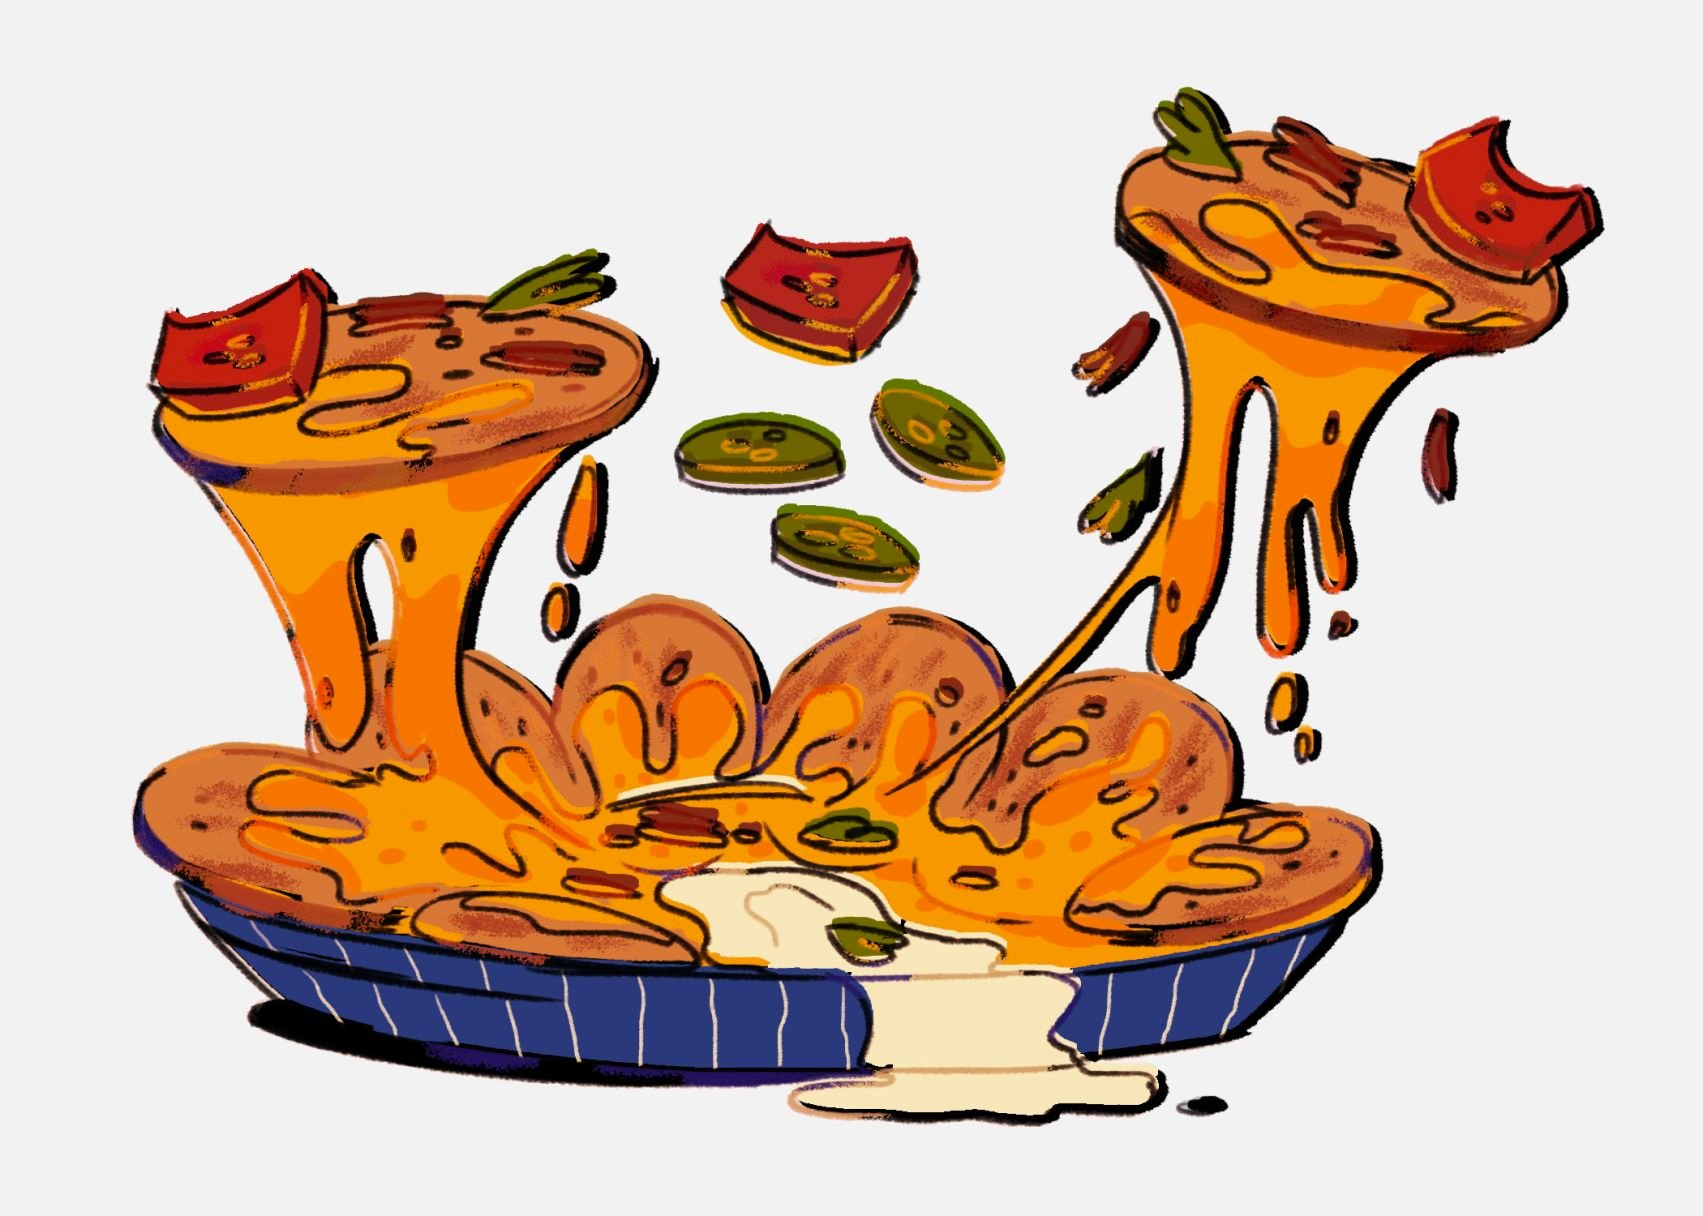 From Scratch: The Irish Nachos' forty-year reign of flavorful fame